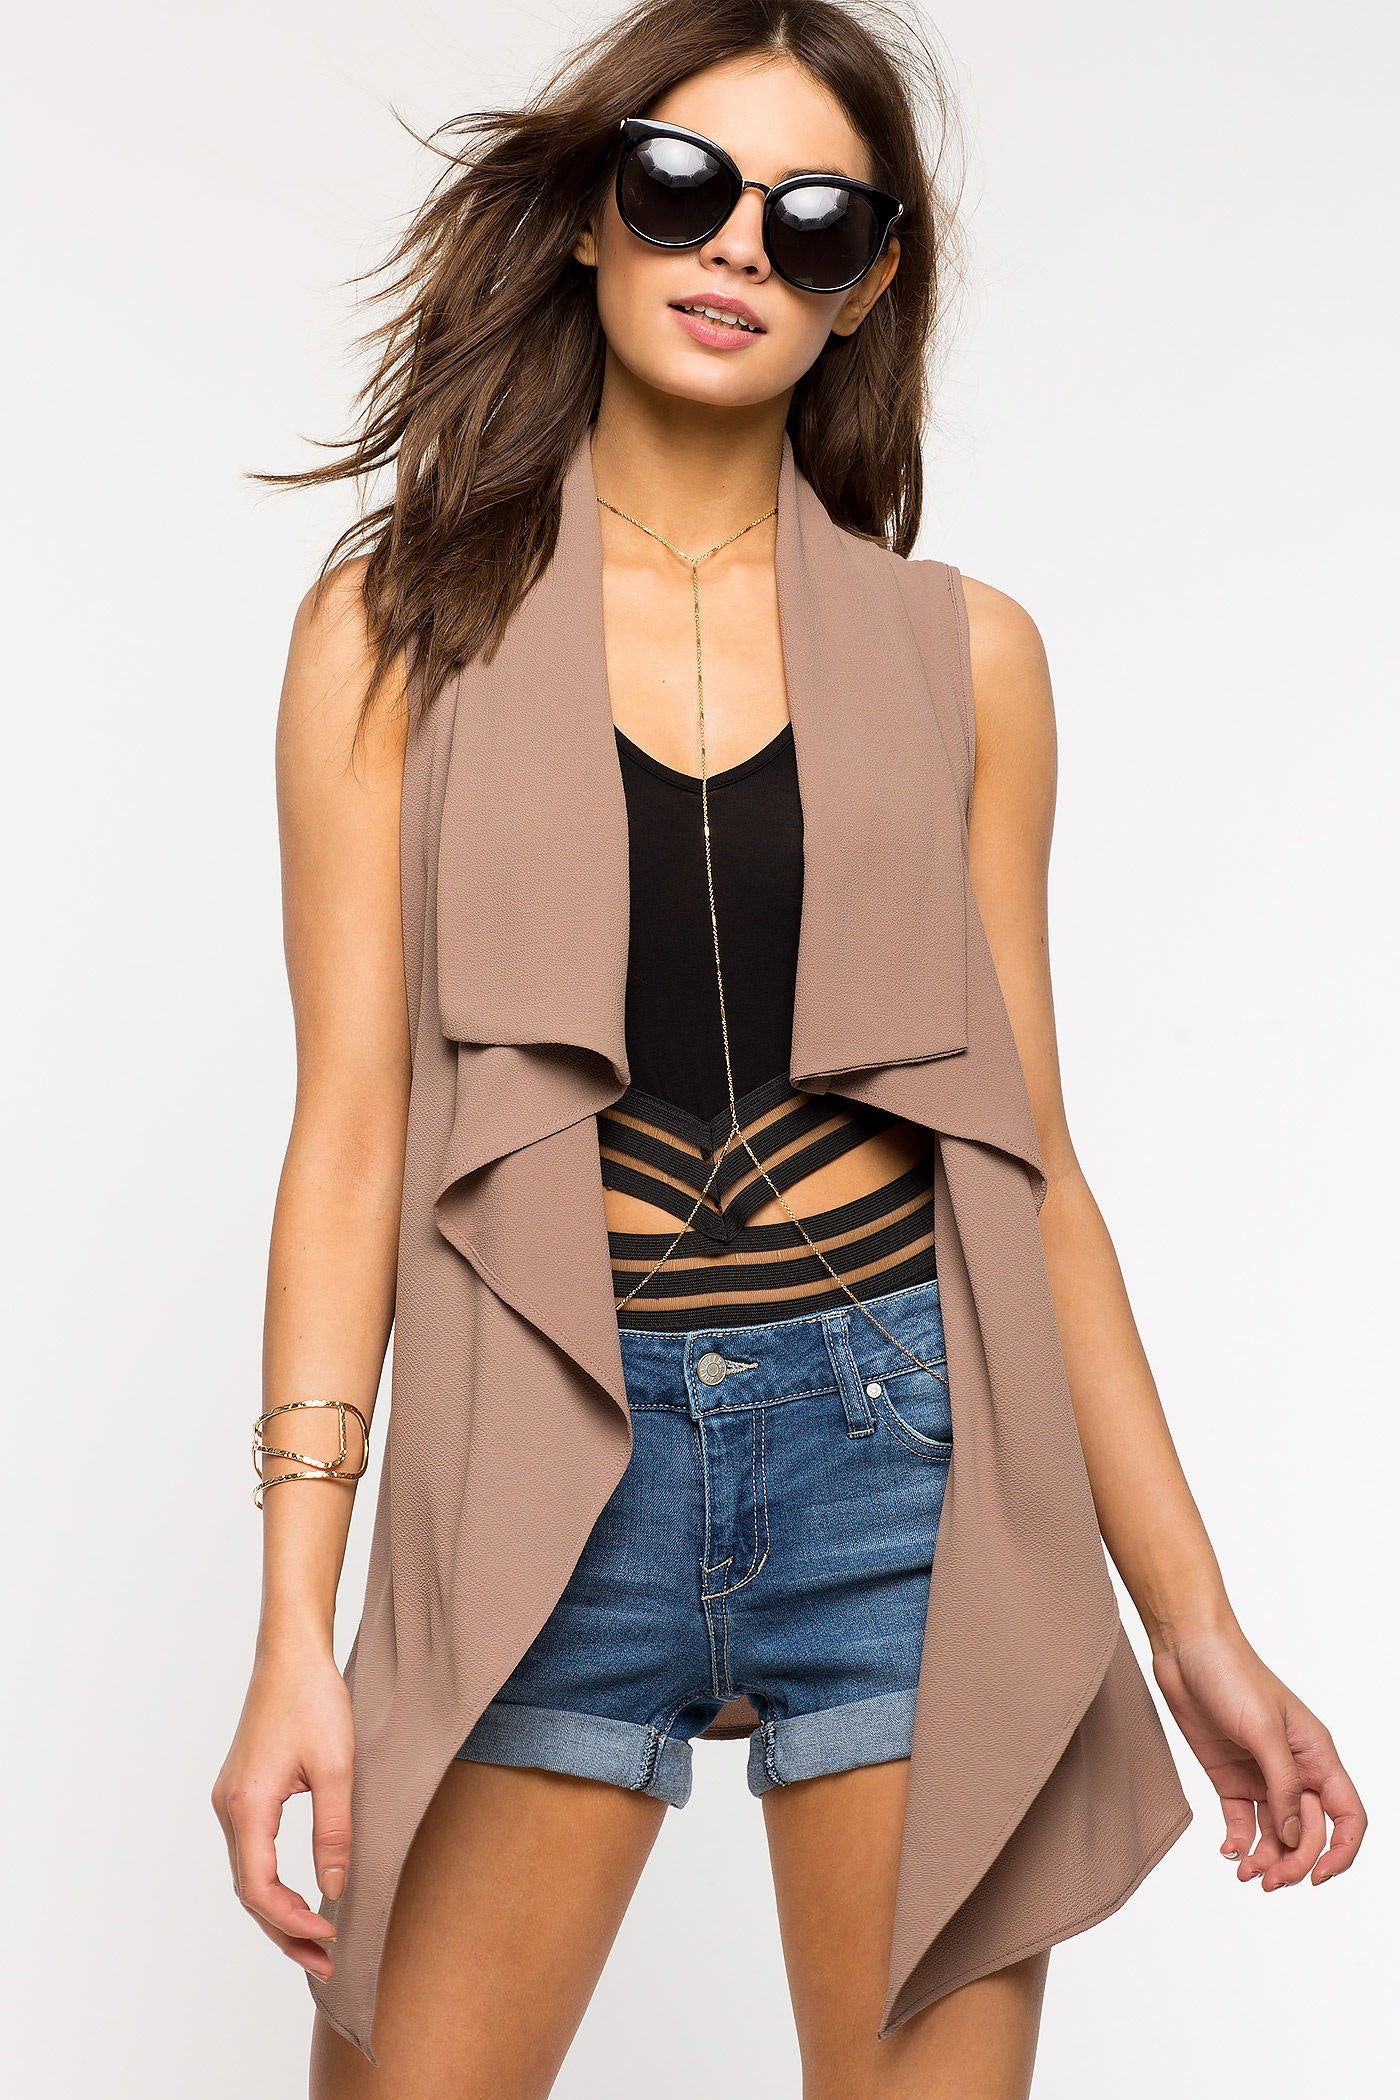 Burgundy Trench Coat Womens   Sleeveless Trench Coat   Beige Double Breasted Trench Coat